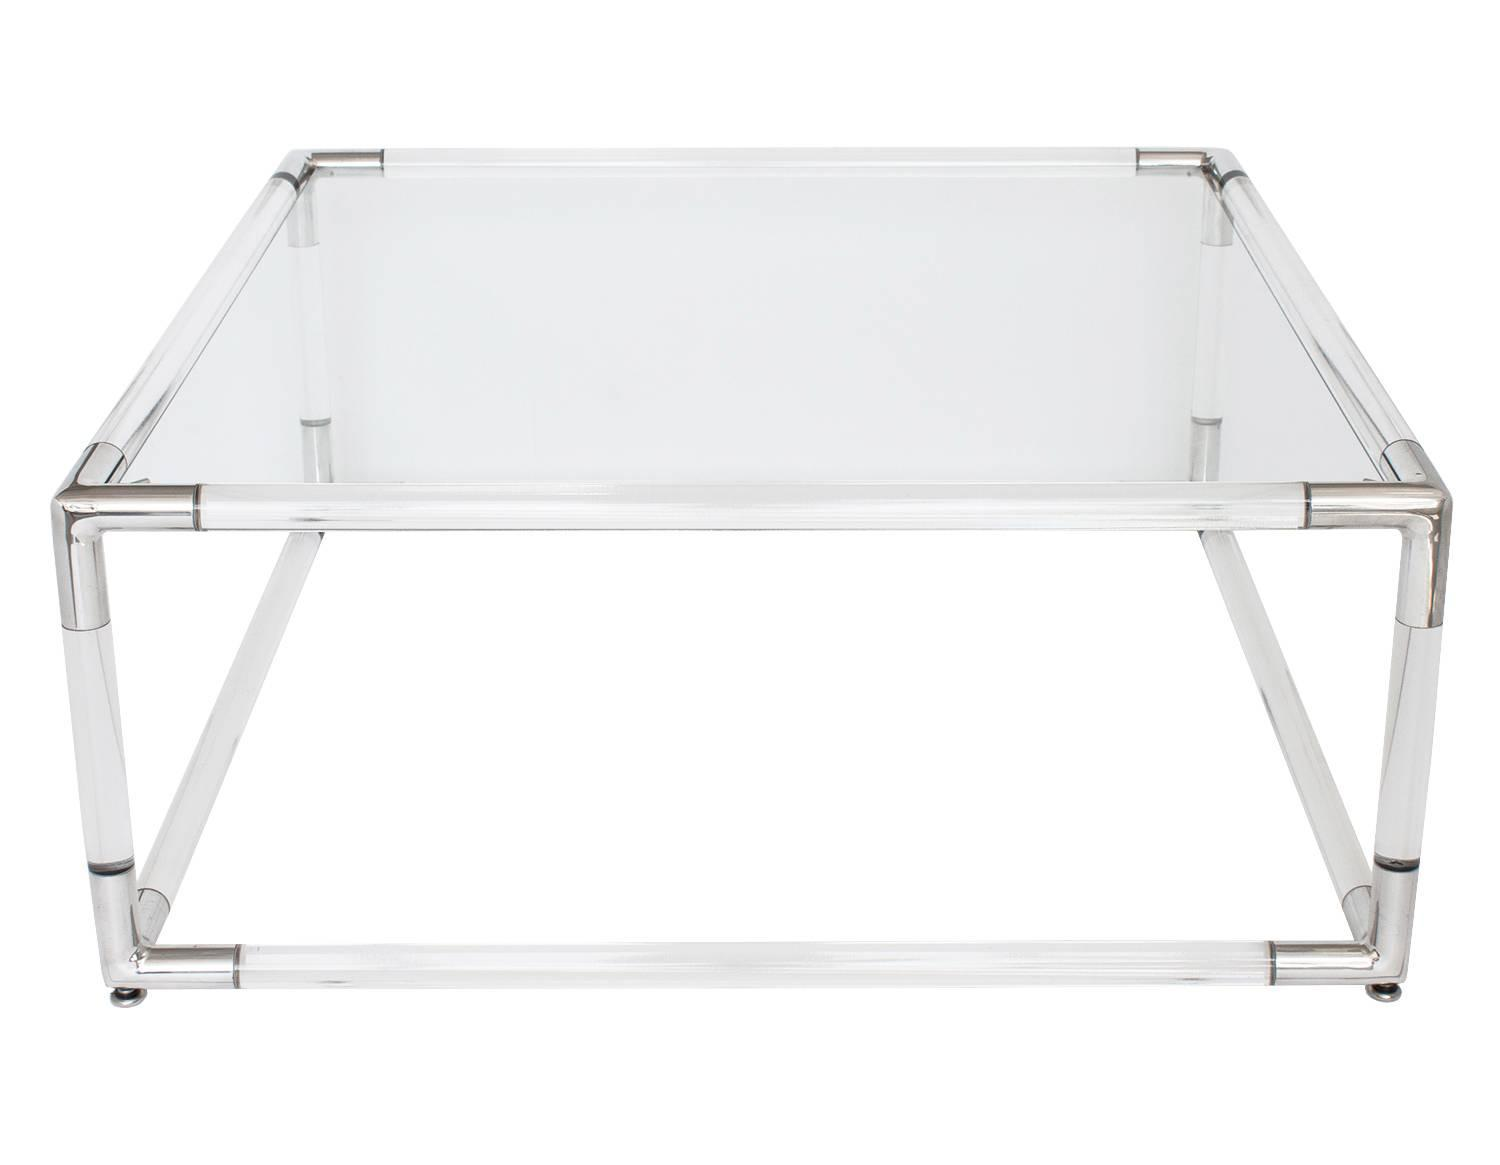 Lucite And Aluminum Square Coffee Table With Glass Top For Sale At 1stdibs